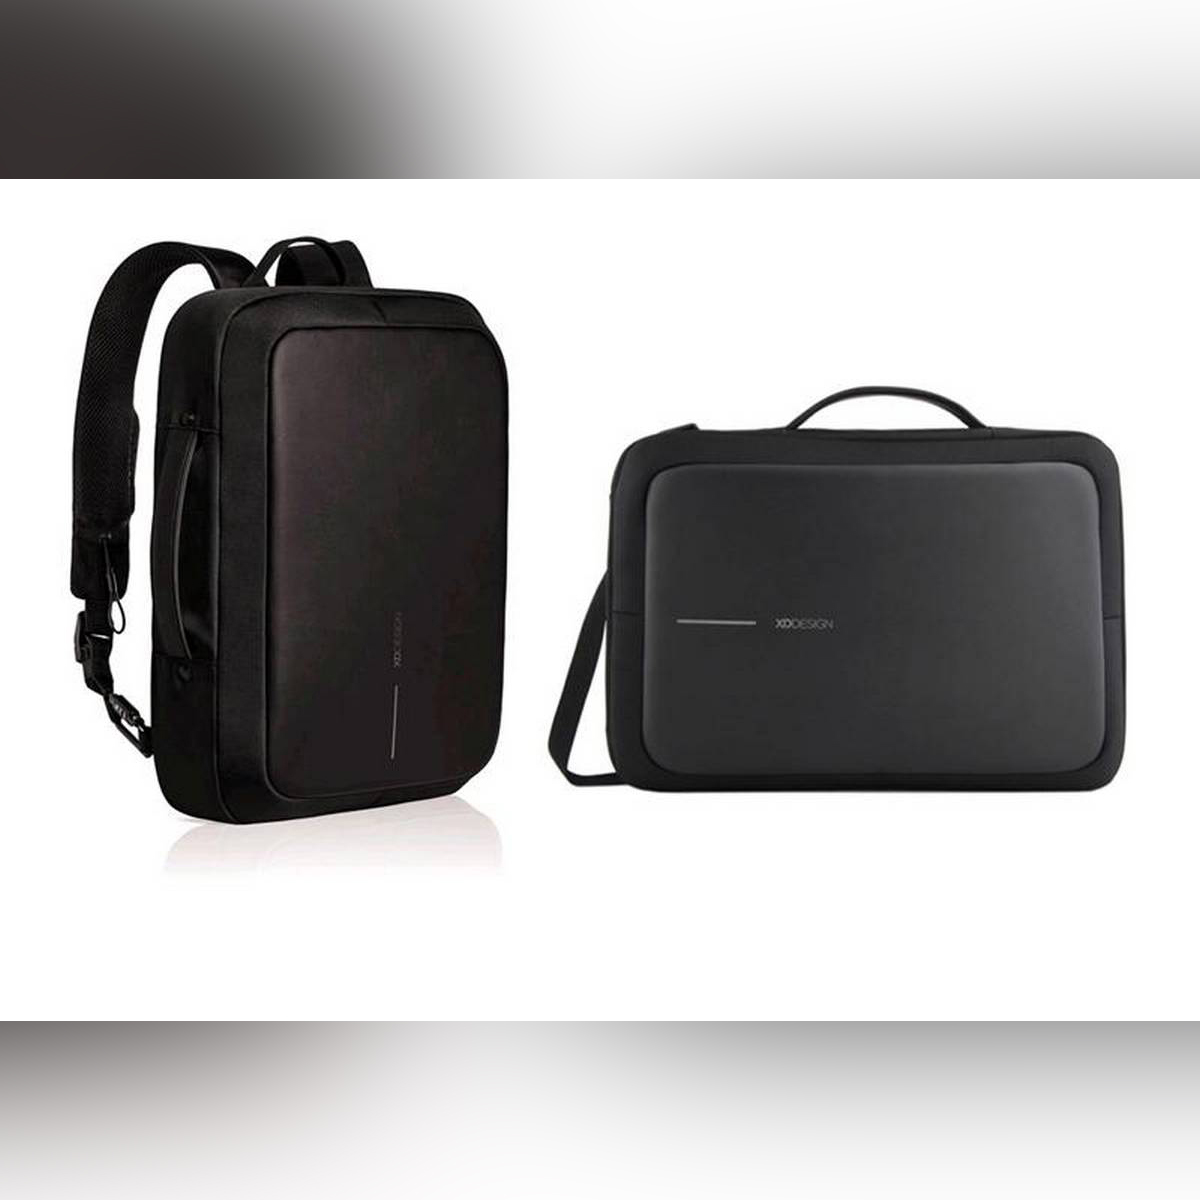 New Arrival The Best Business Briefcase Backpack for 15.6 inches Laptop Black